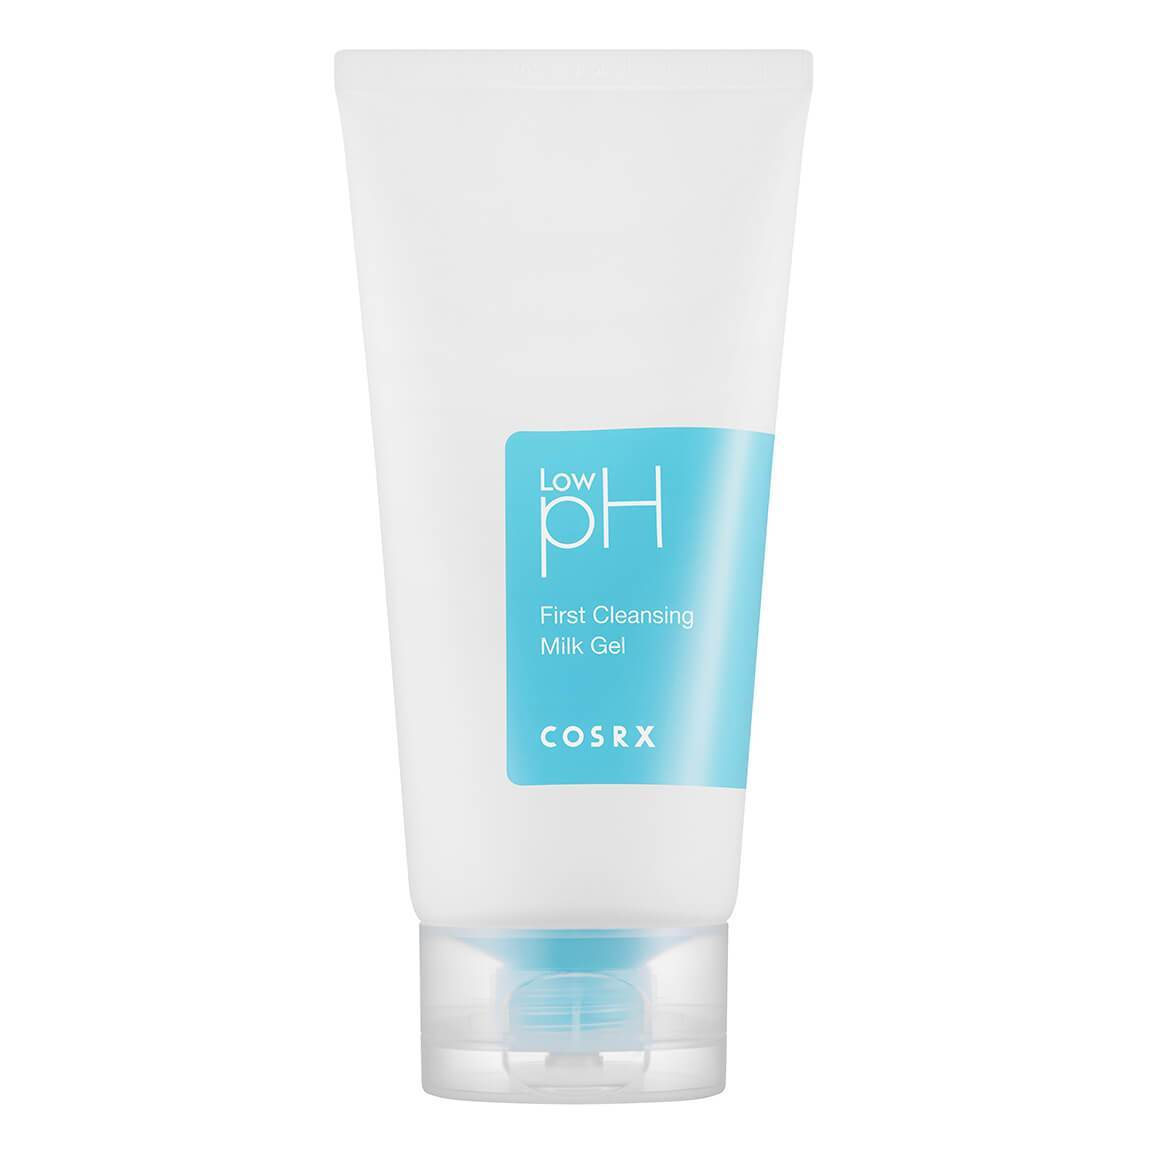 Low pH First Cleansing Milk Gel 150ml